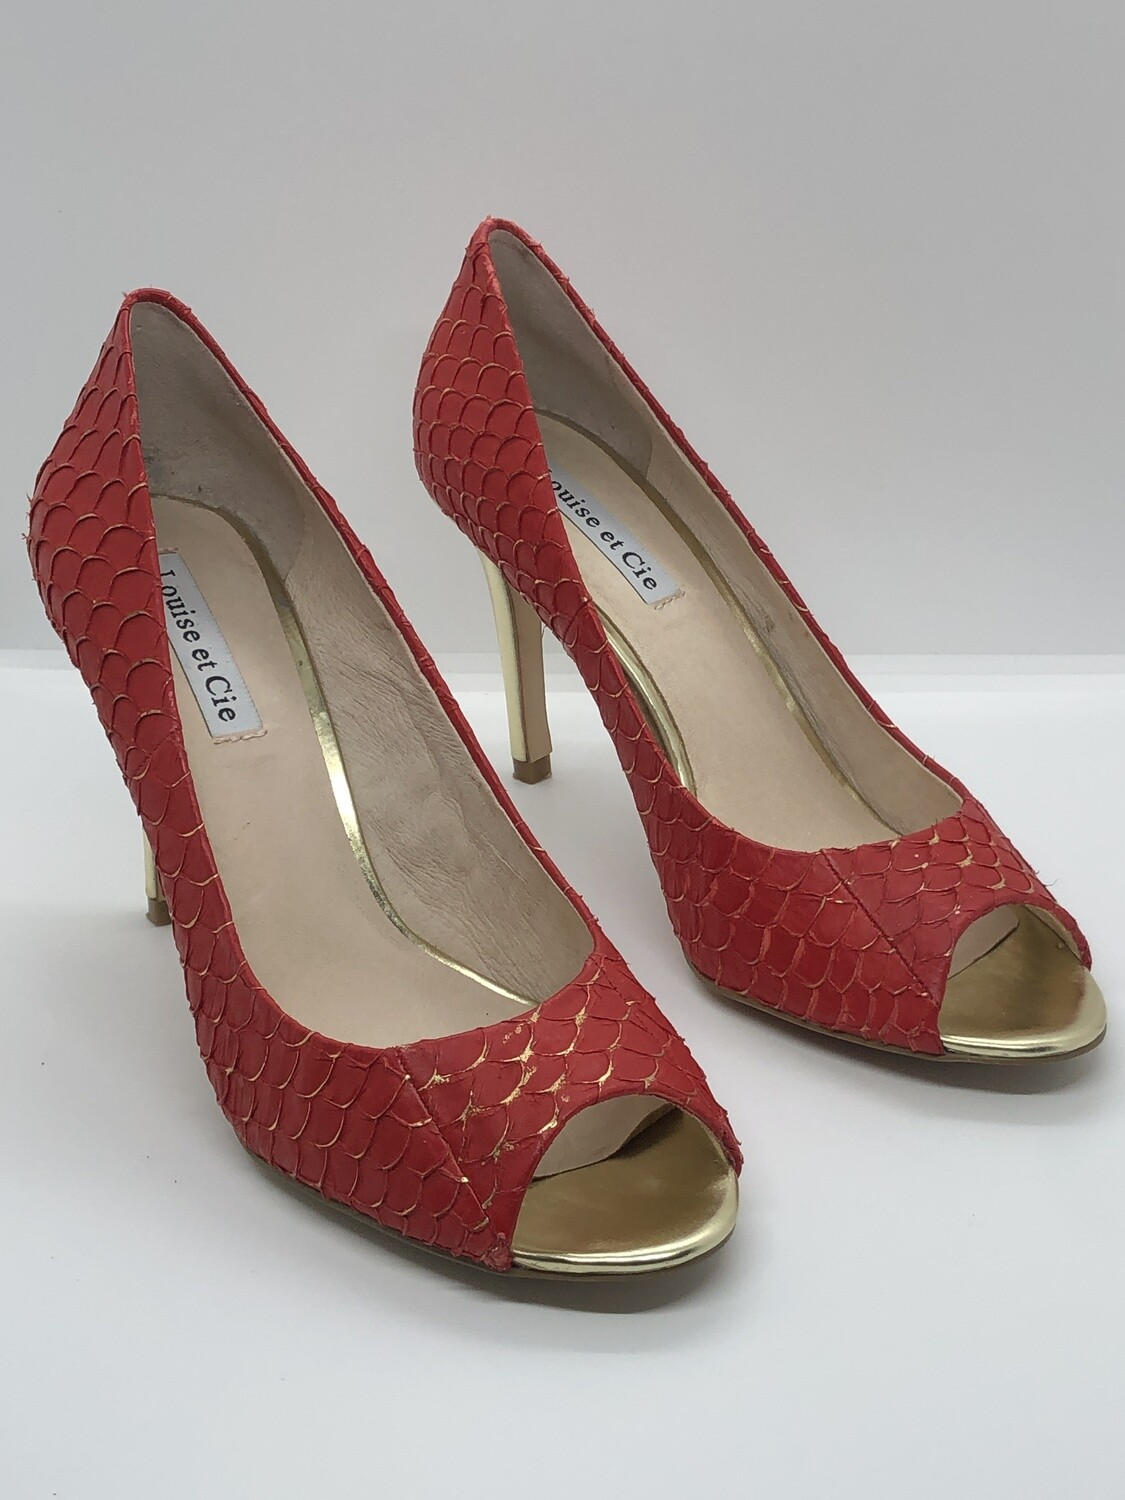 LOUISE et CIE Red & Gold Snakeskin Peep Toe Heels size 8 1/2